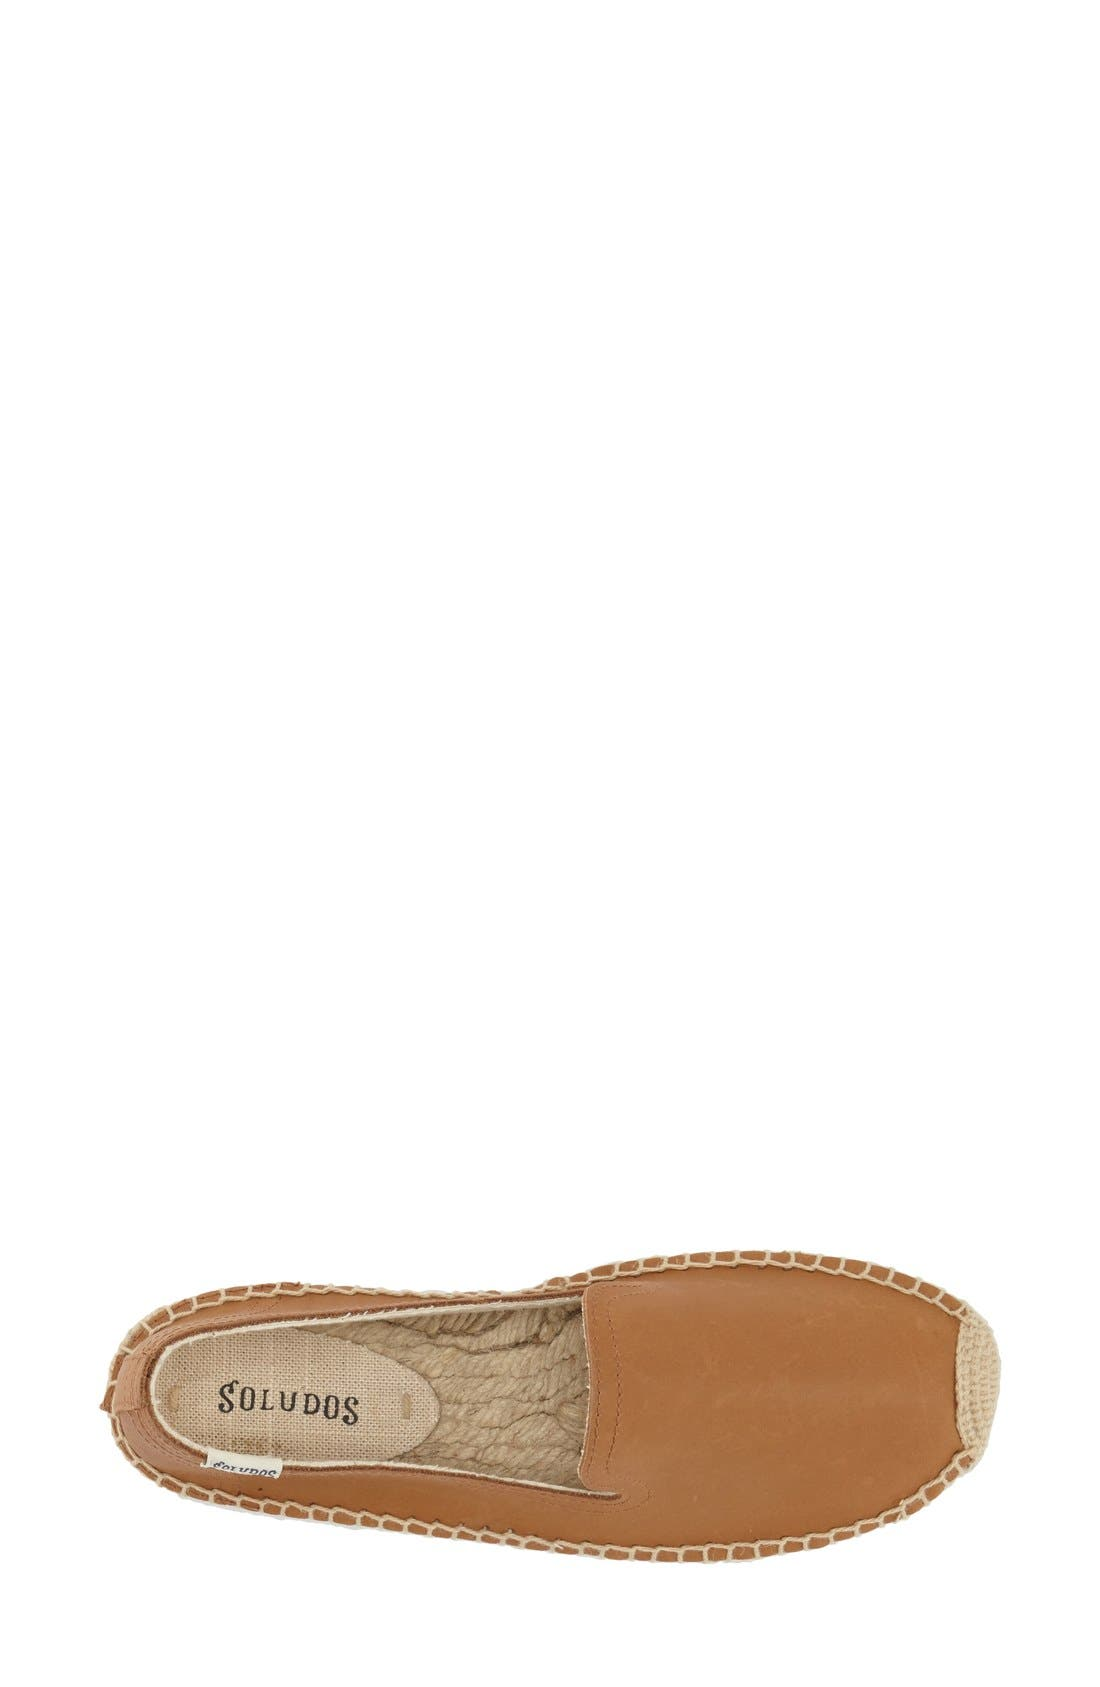 SOLUDOS, 'Smoking' Espadrille Platform Shoe, Alternate thumbnail 4, color, TAN LEATHER